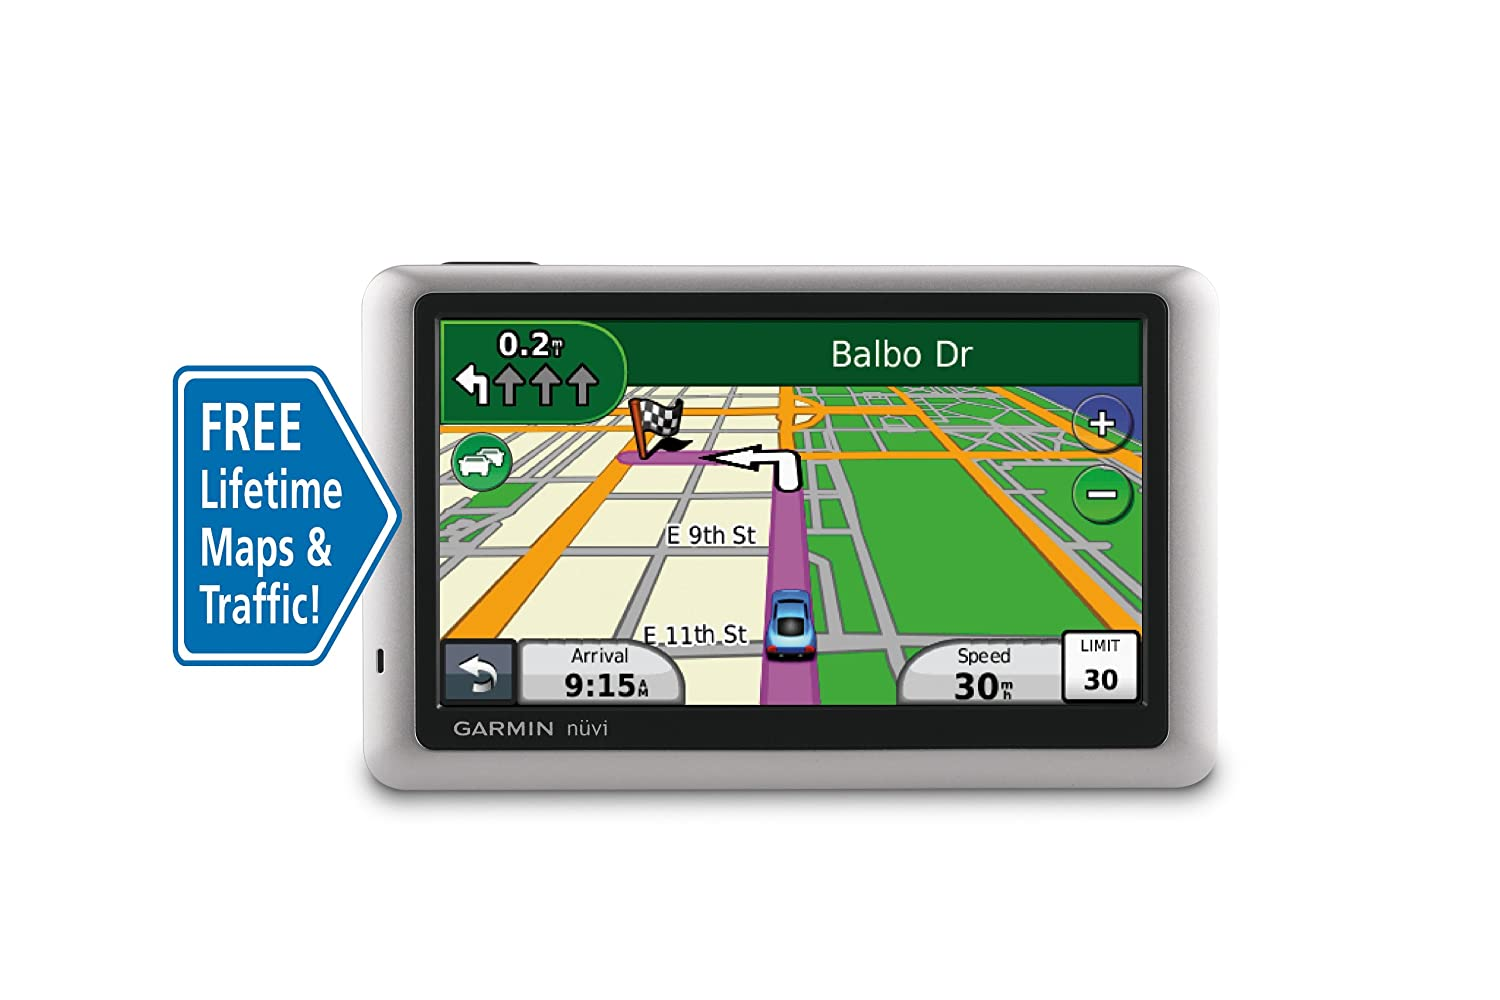 Amazon Com Garmin Nuvi 1450lmt 5 Inch Portable Gps Navigator With Lifetime Map Traffic Updates Discontinued By Manufacturer Garmin Home Audio